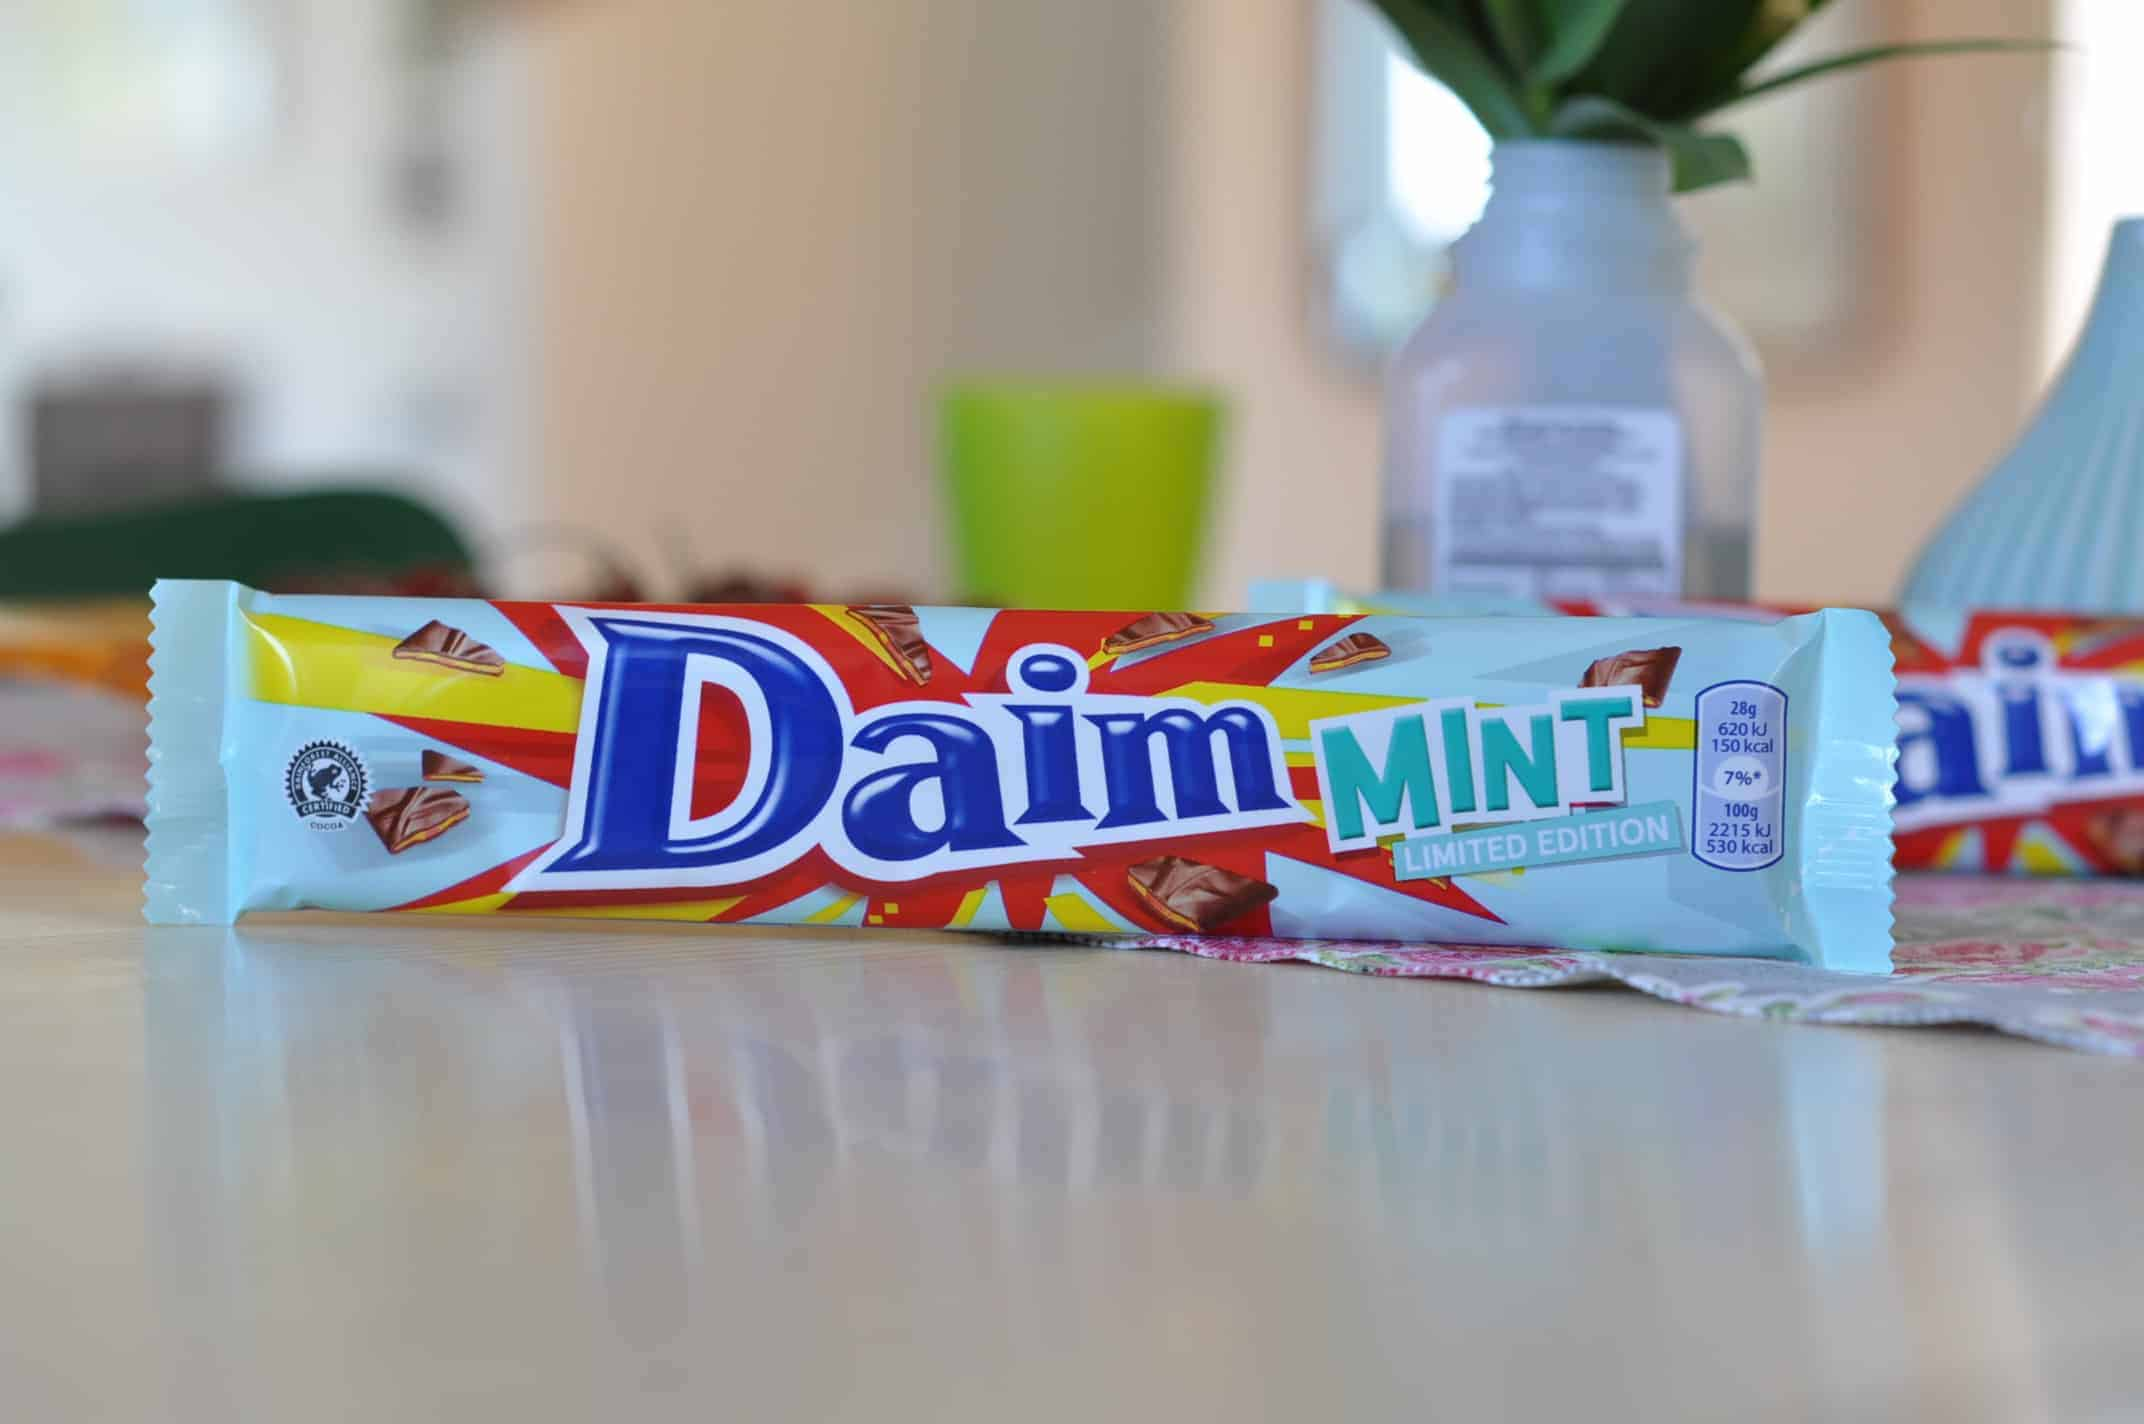 Daim Mint Limited Edition